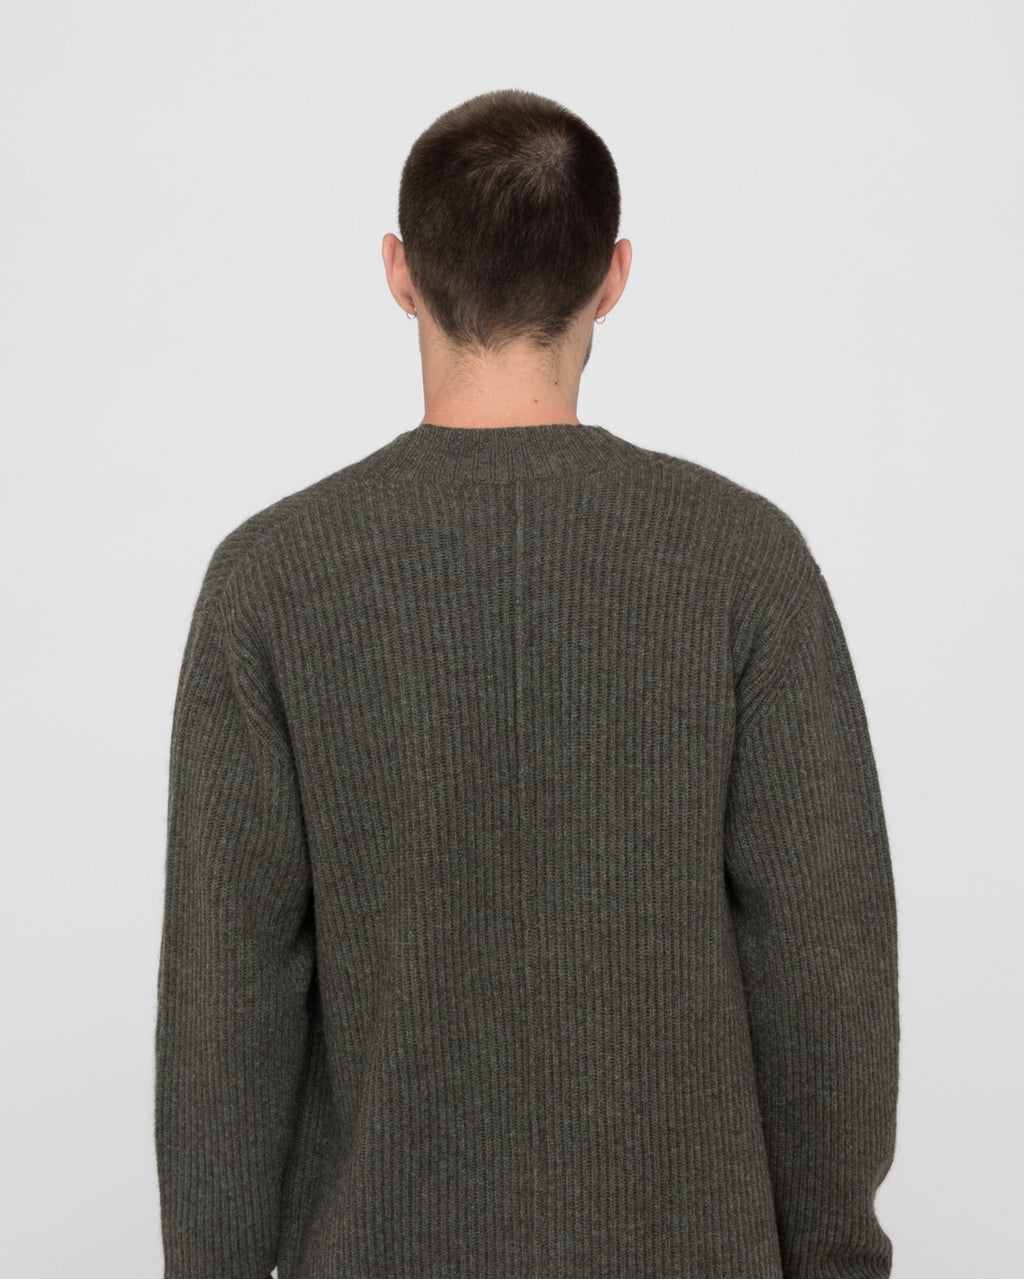 The Socorro Sweater in Country Green